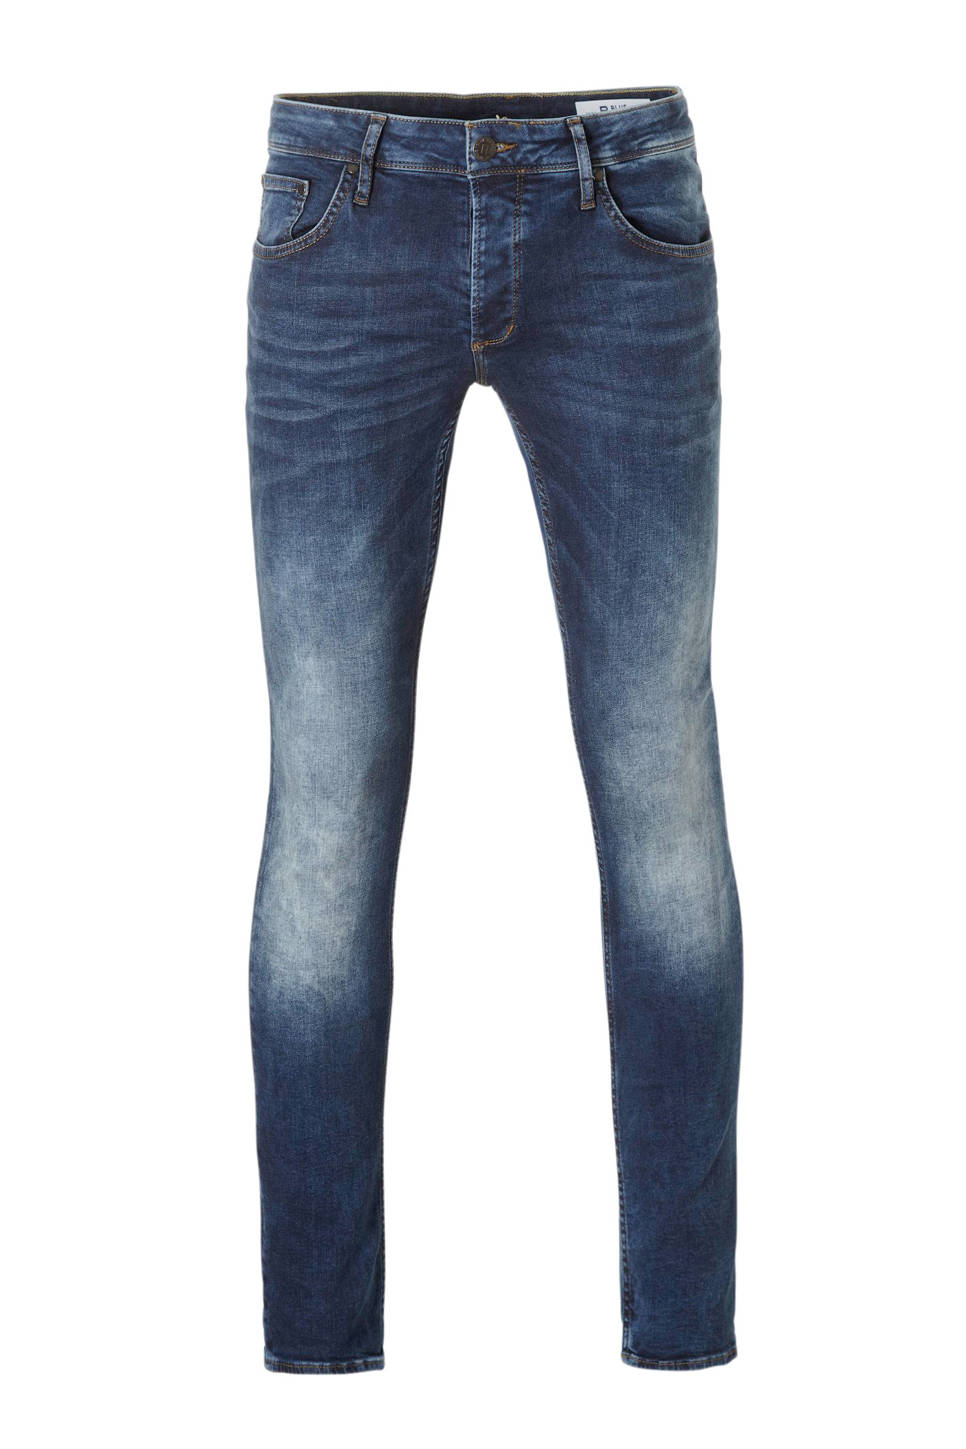 WE Fashion Blue Ridge slim fit jeans, Used denim